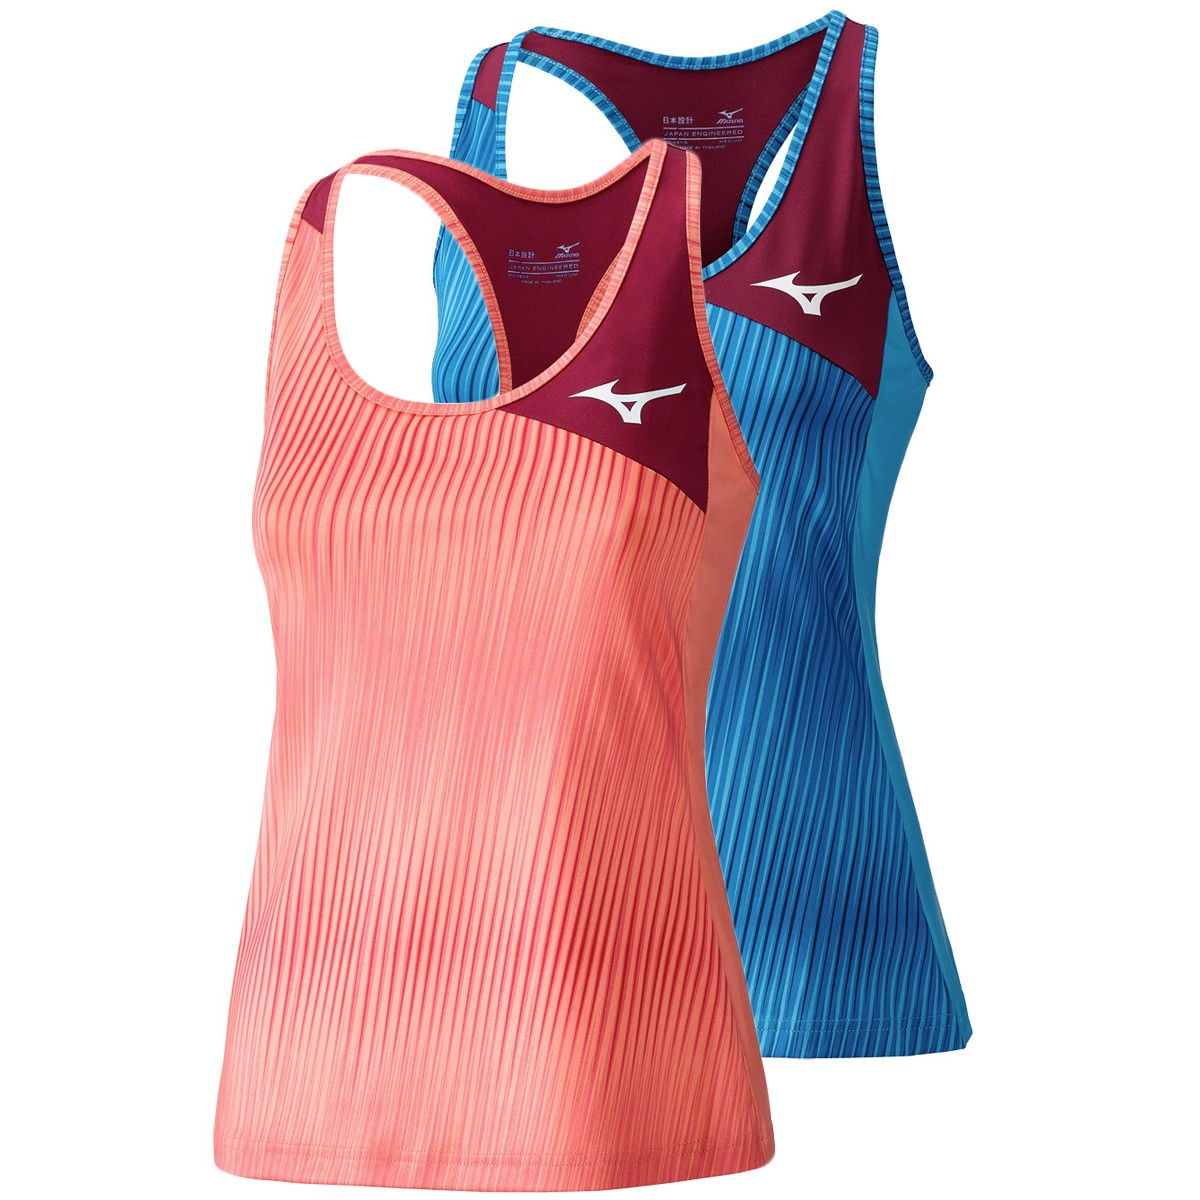 low priced 716c3 08f69 WOMEN S MIZUNO AMPLIFY TANK TOP +